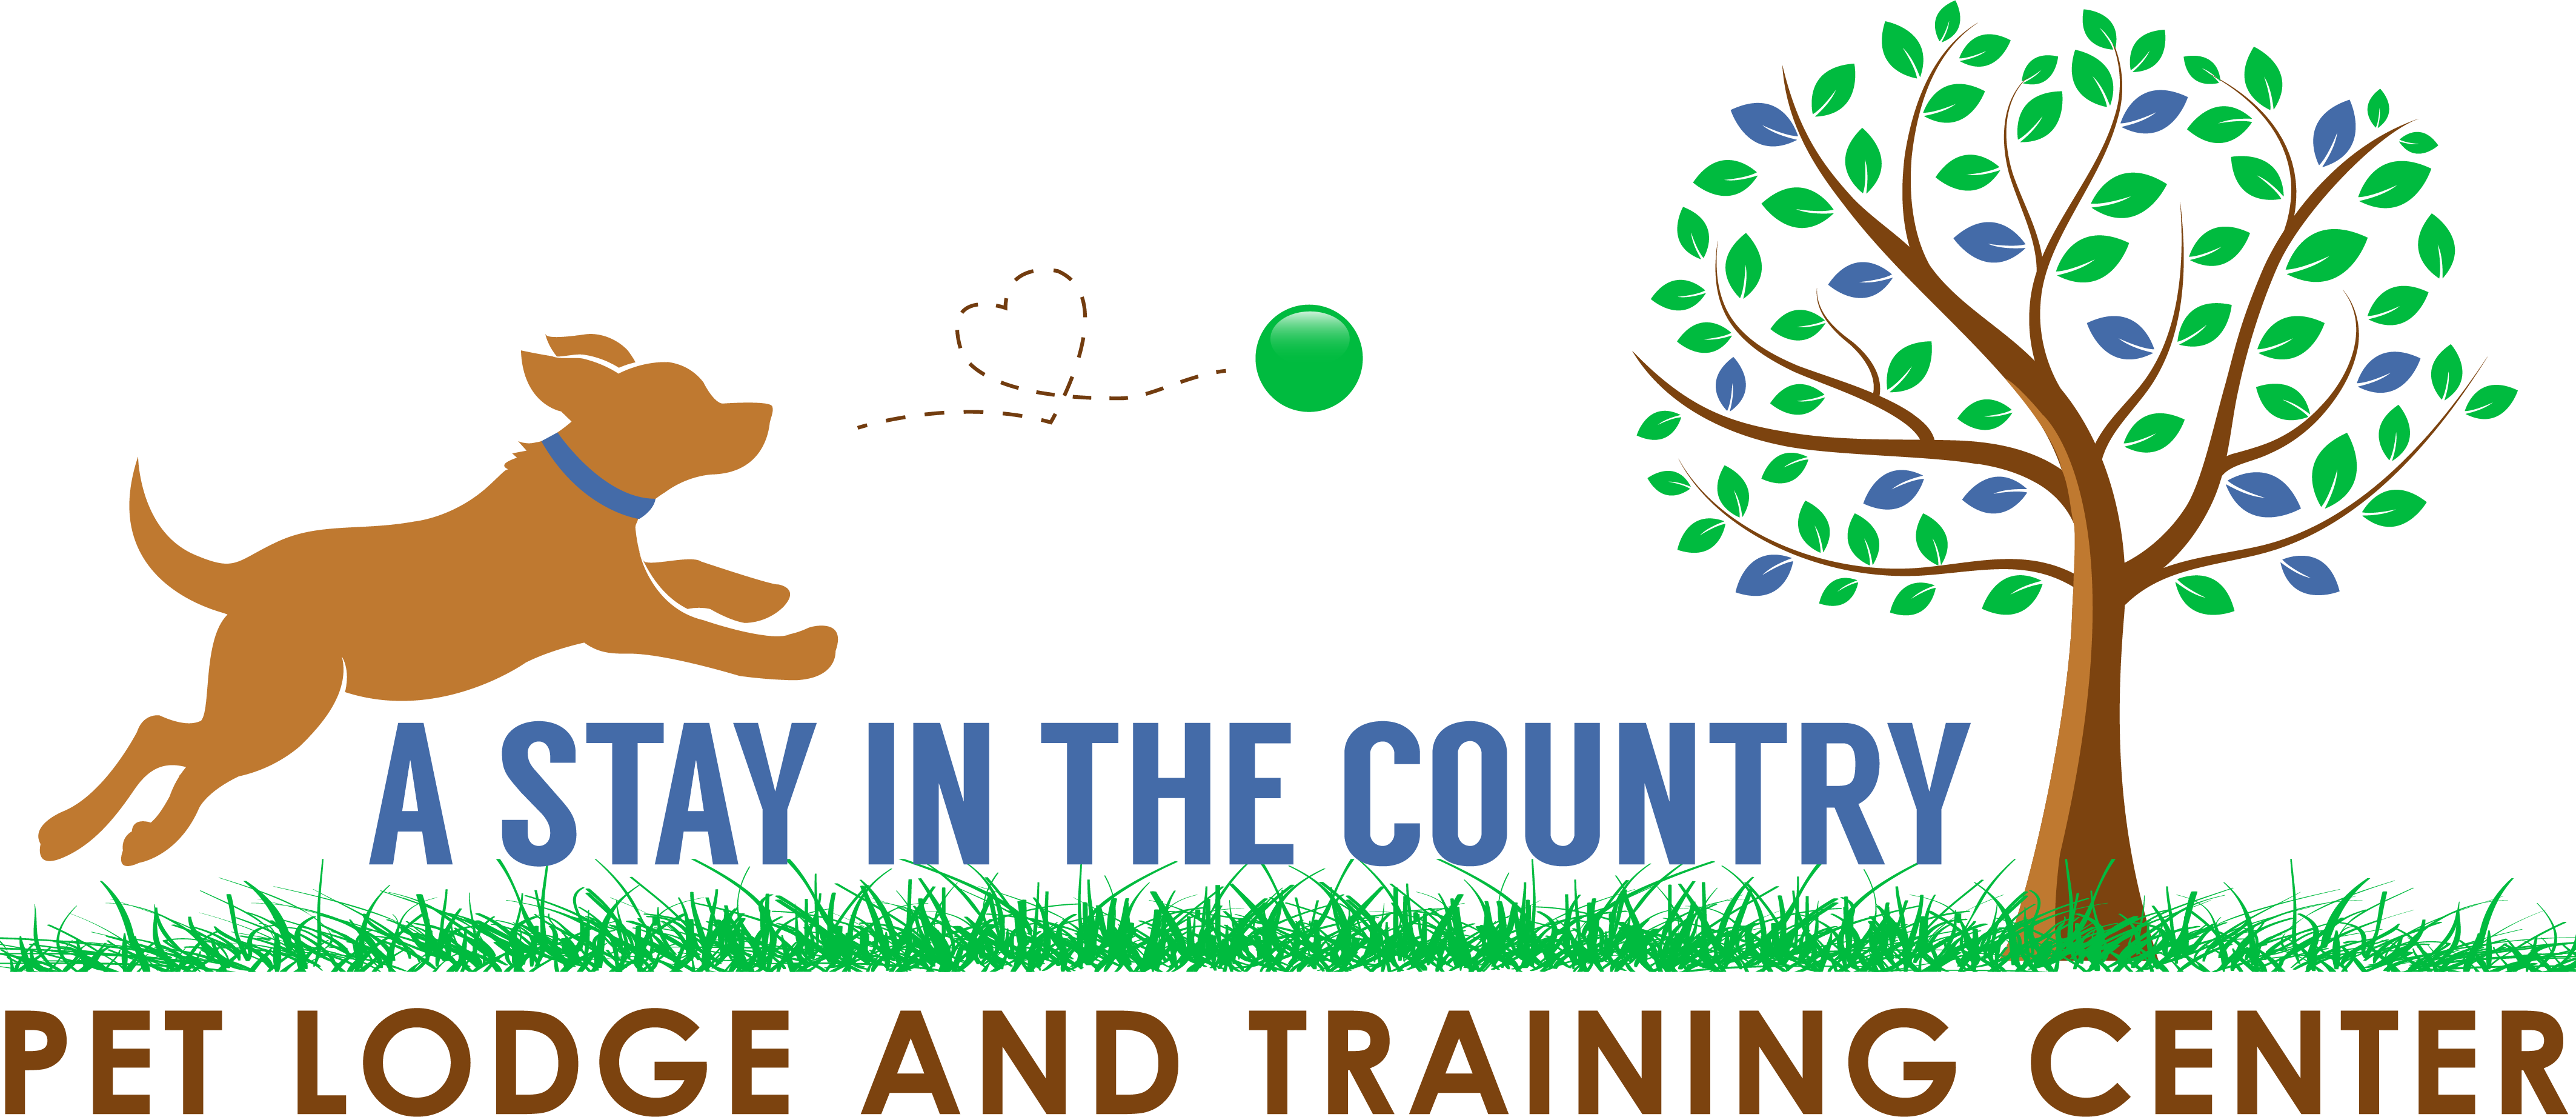 A Stay in the Country Pet Lodge & Training Center